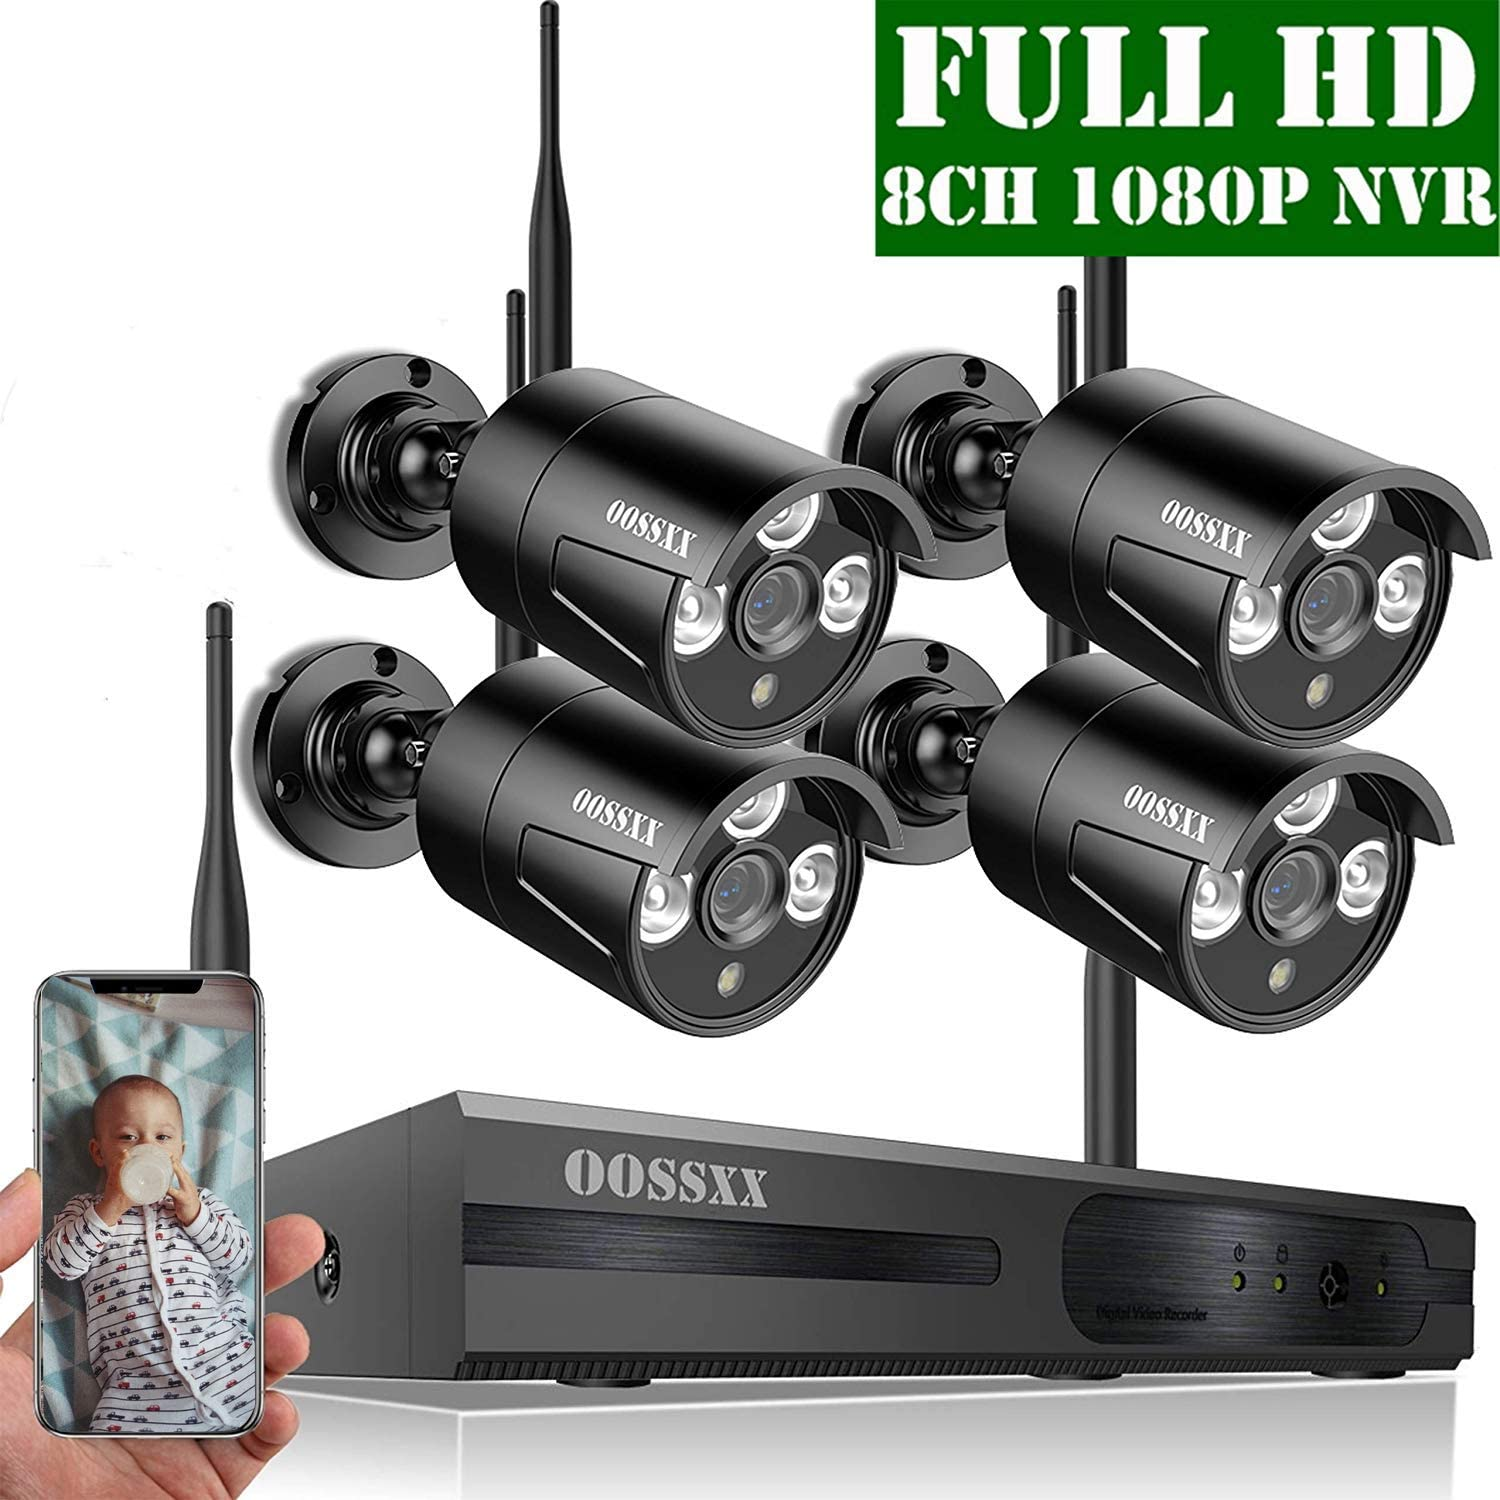 【Expandable 8CH】 OOSSXX HD 1080P 8-Channel Wireless Security Camera System,4 pcs 1080P 2.0 Megapixel Wireless Weatherproof Bullet IP Cameras,Plug Play,70FT Night Vision,P2P,App, No Hard Drive